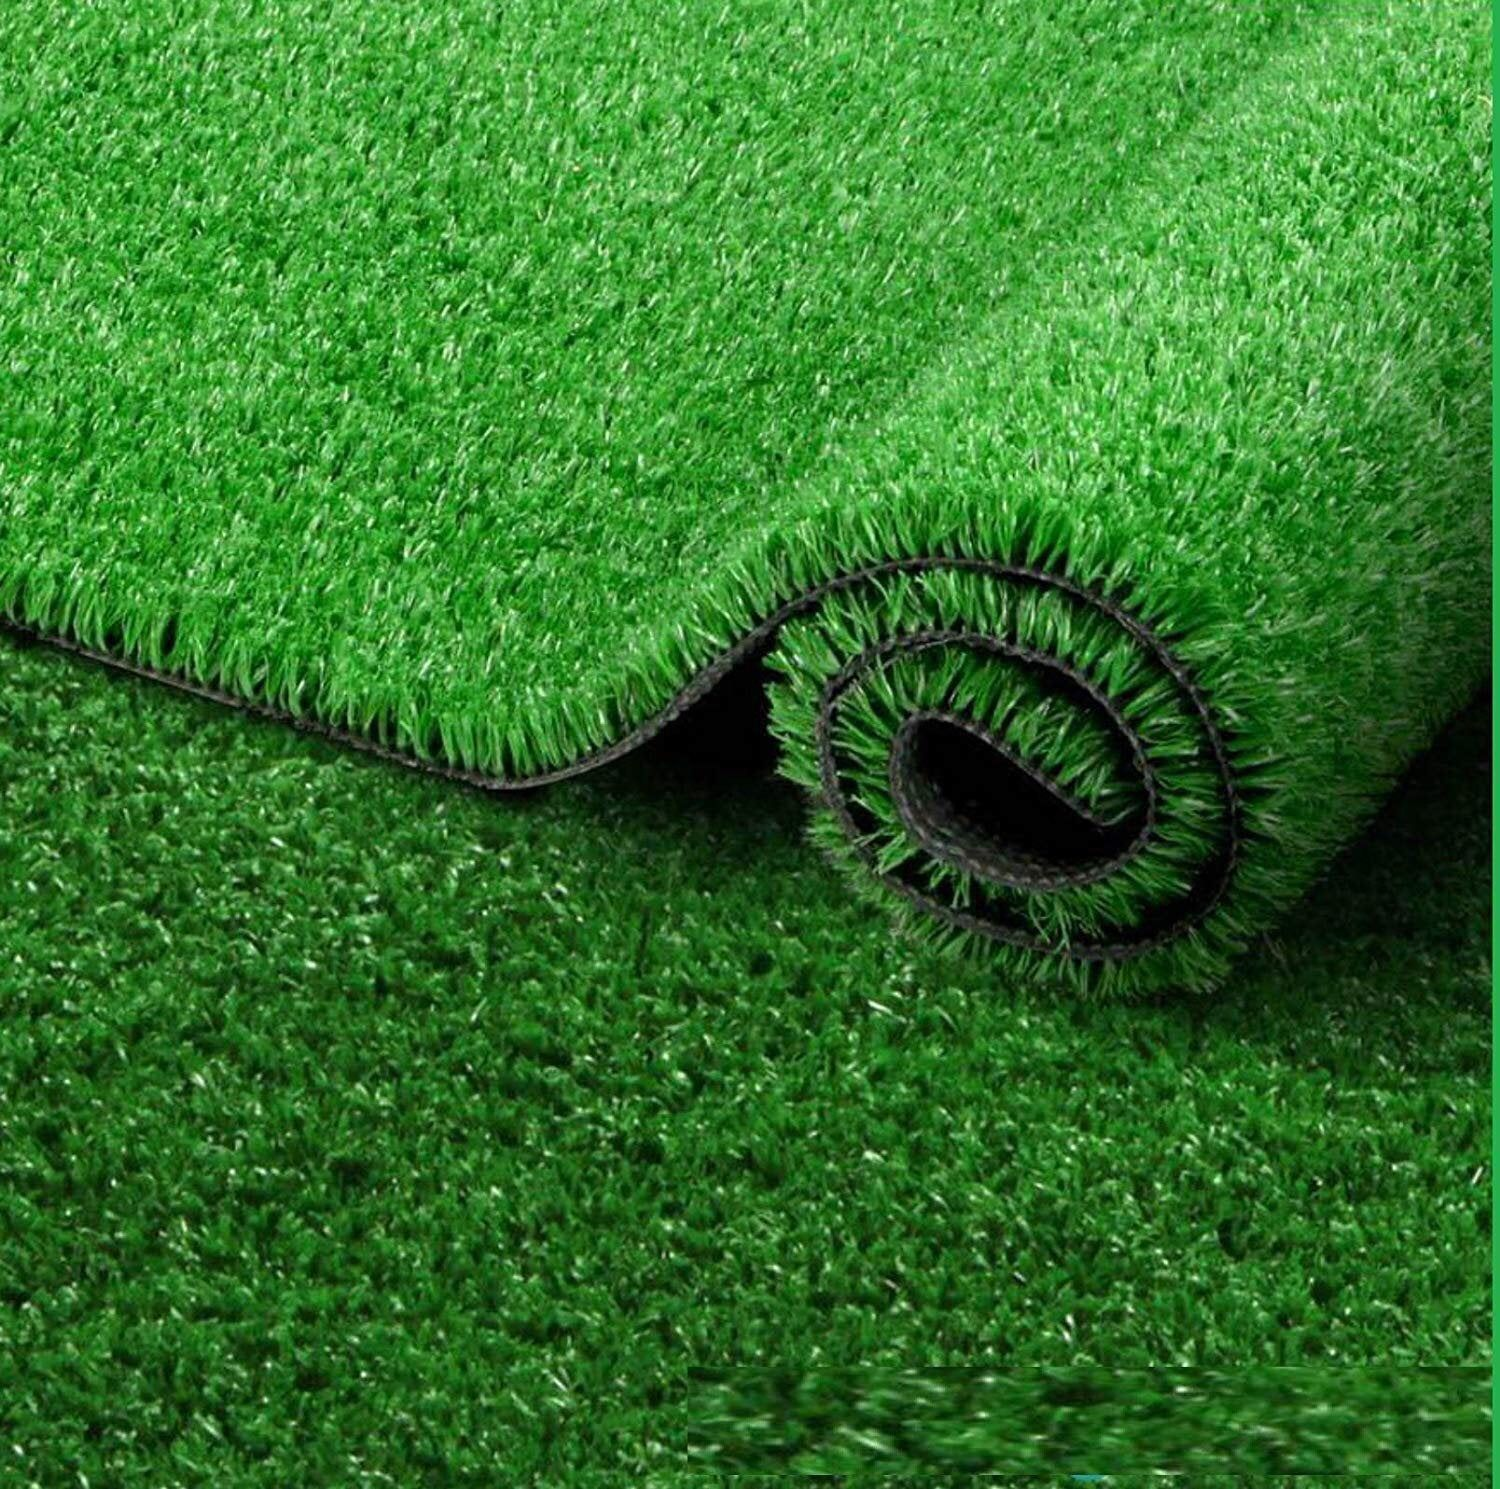 Artifical Grass Carpet Mat Astro Turf Lawn Thick Soft Large Garden Outdoor Realistic Looking Weather Resistance By Kalk Artifical Grass Grass Carpet Astro Turf